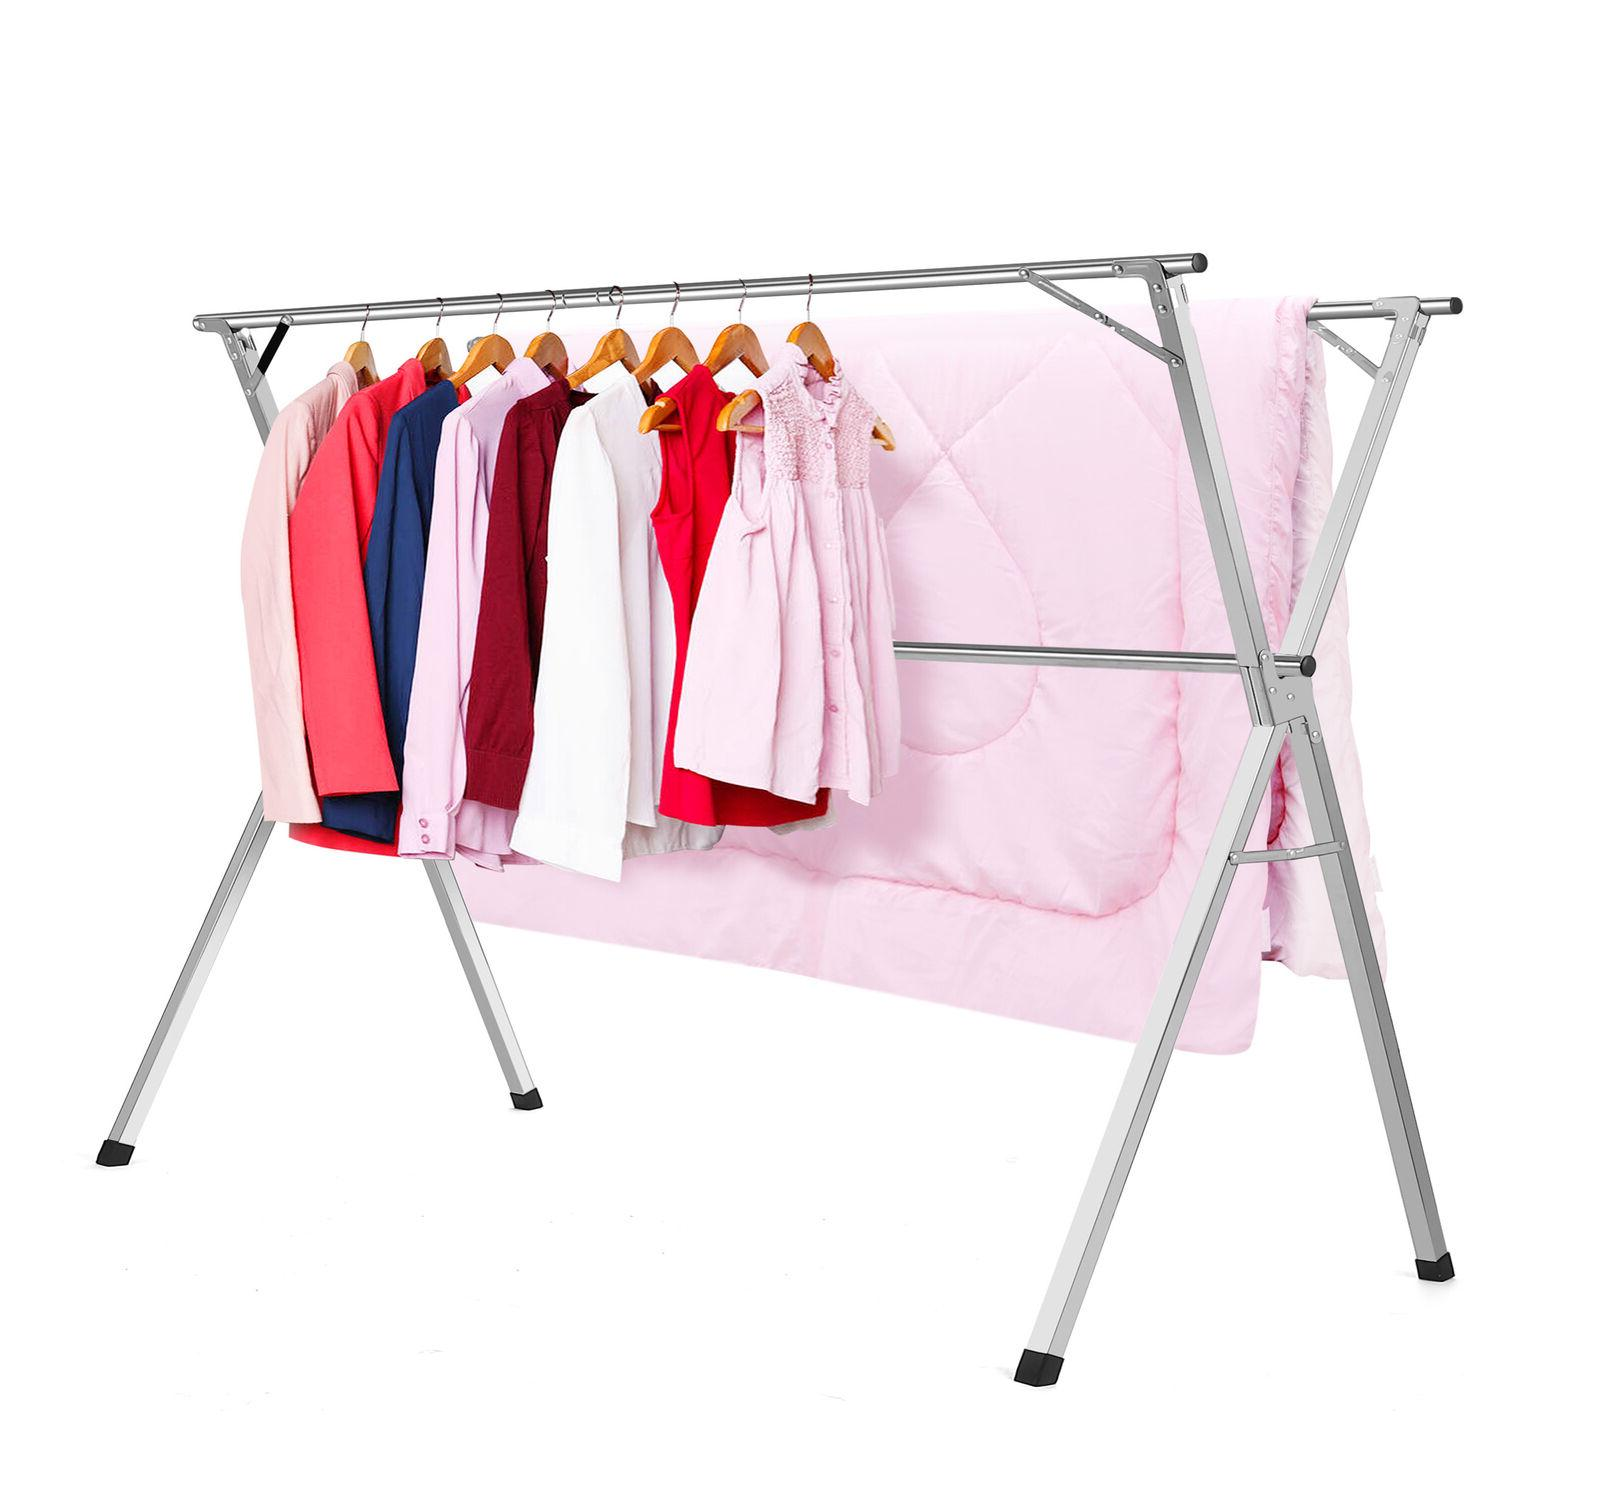 Stainless Steel Drying Rack Folding Clothes Rack